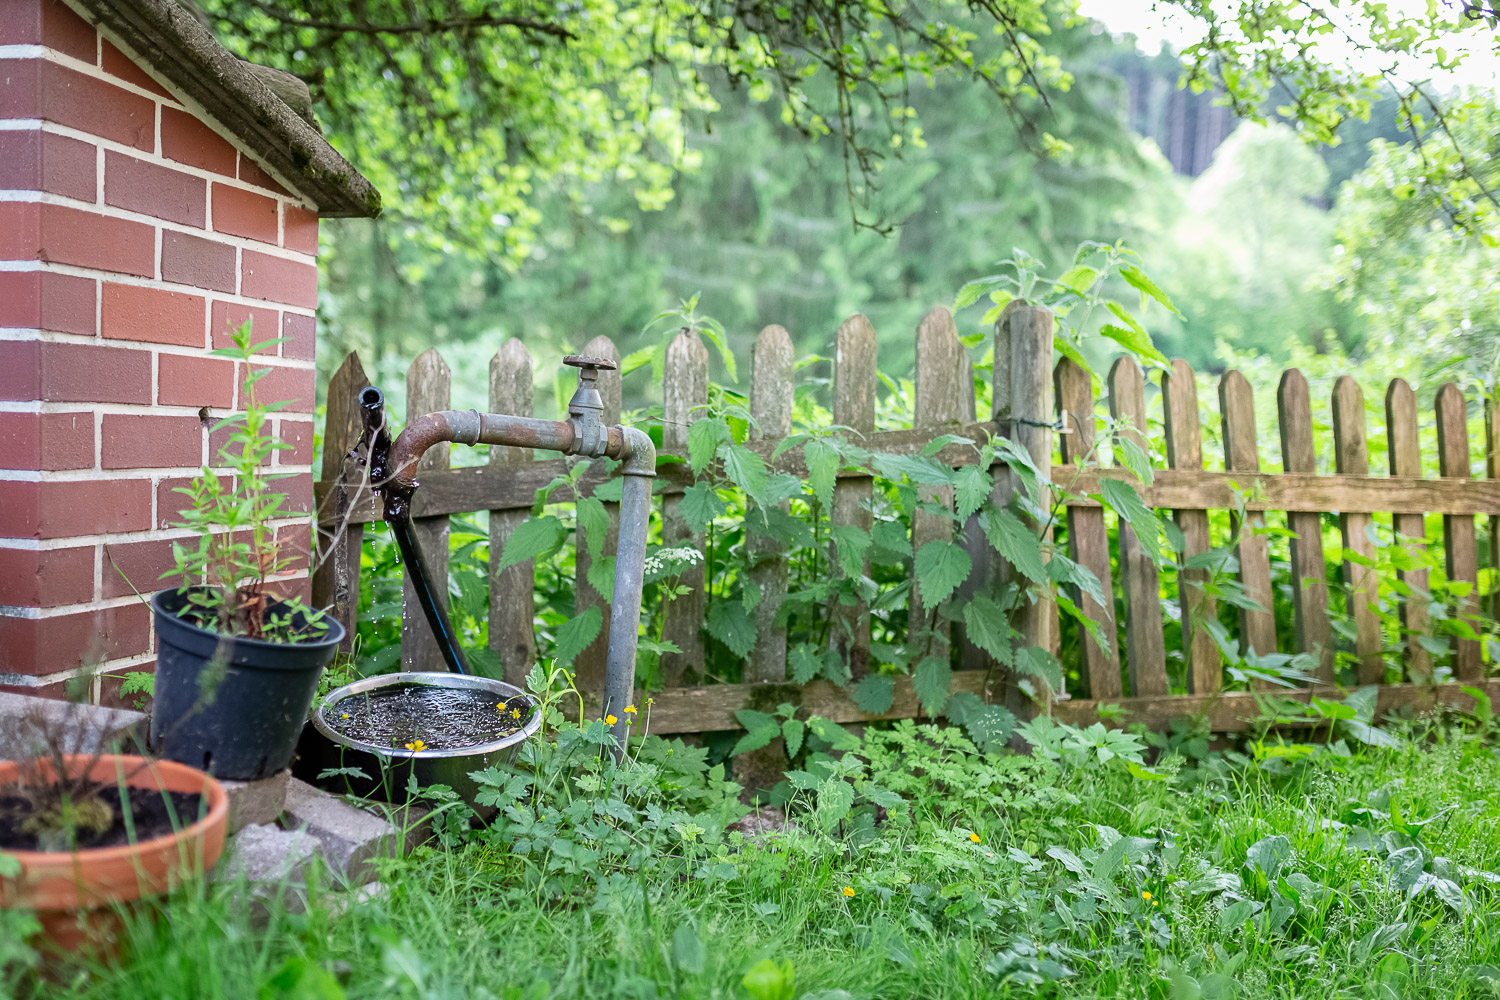 Green garden with wooden fence, ANdrea Schenke Photography, Wittlich